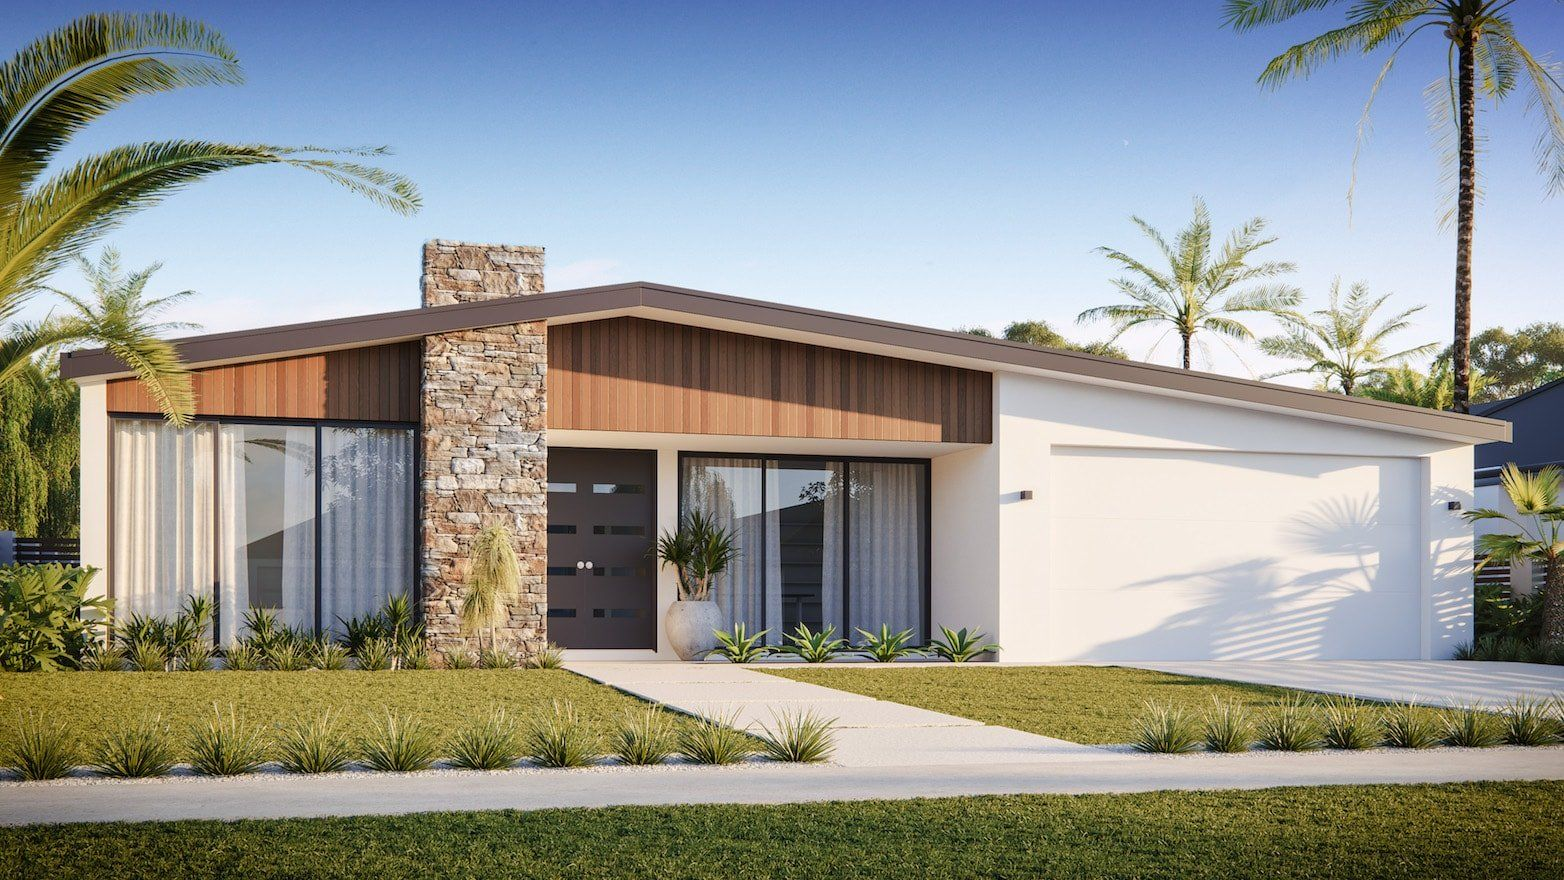 The palm springs oswald homes luxury home builders perth also rh pinterest